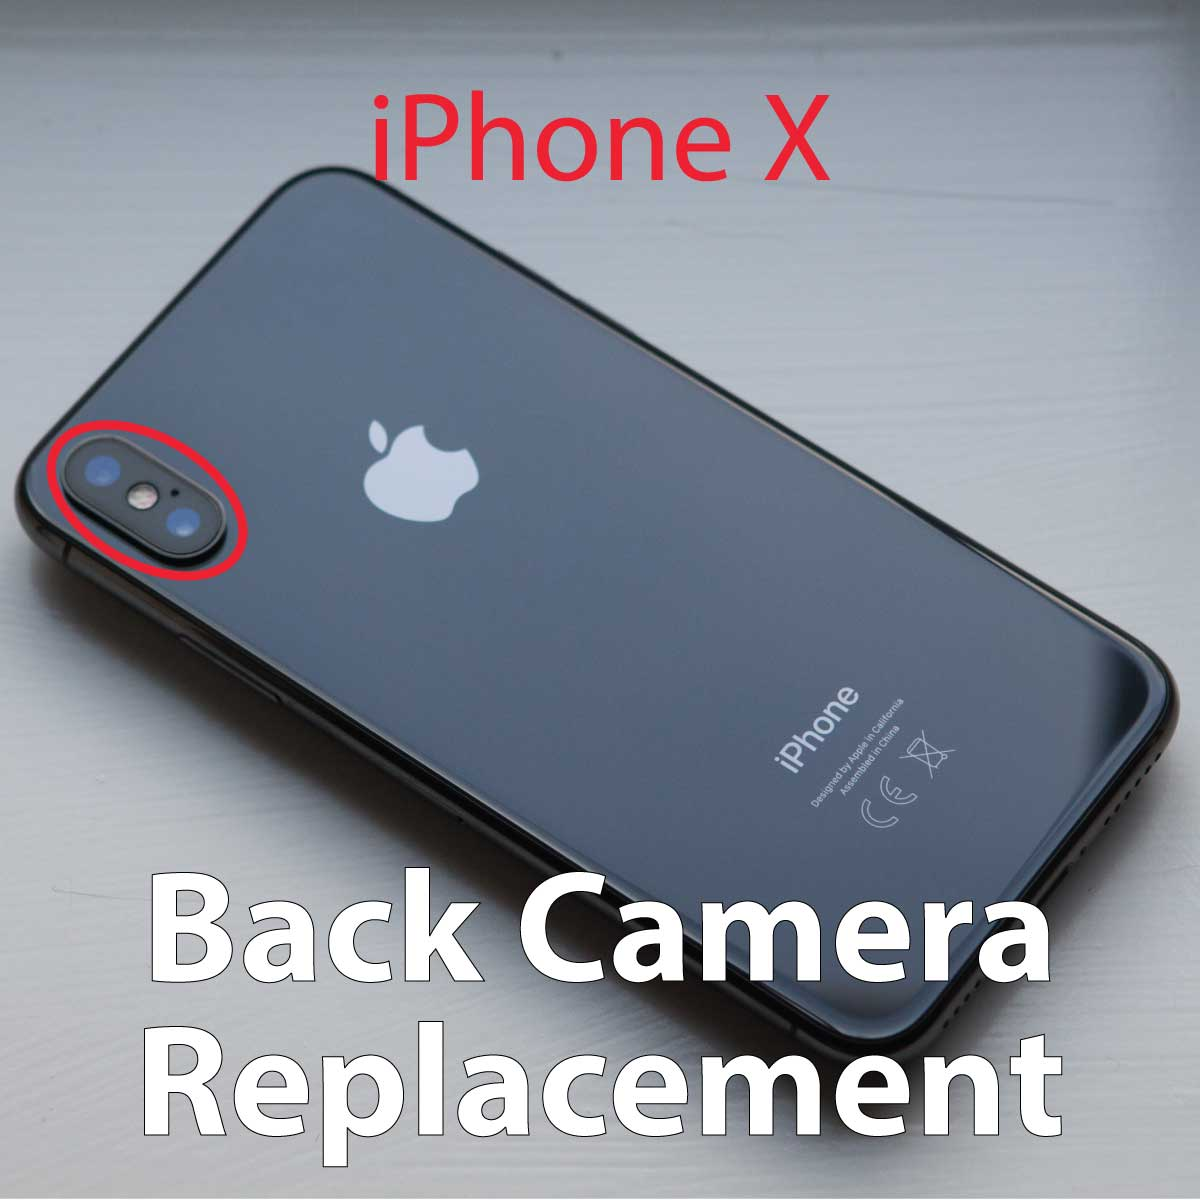 iPhone X Back Camera Replacement